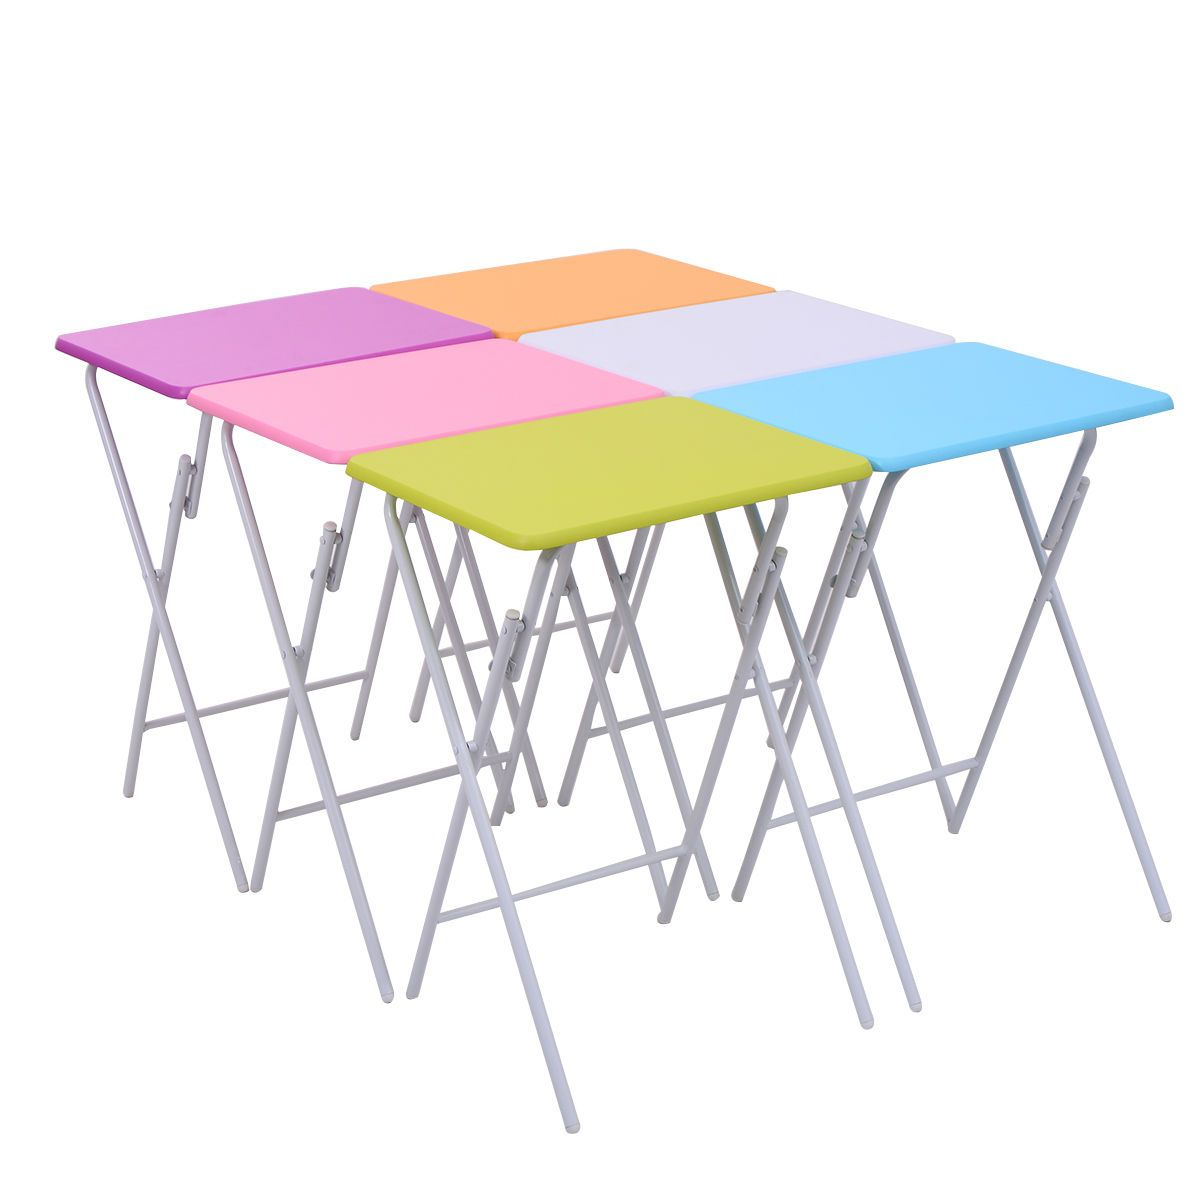 Set Of 6 Folding Side Table Multicolor Game Snack Craft